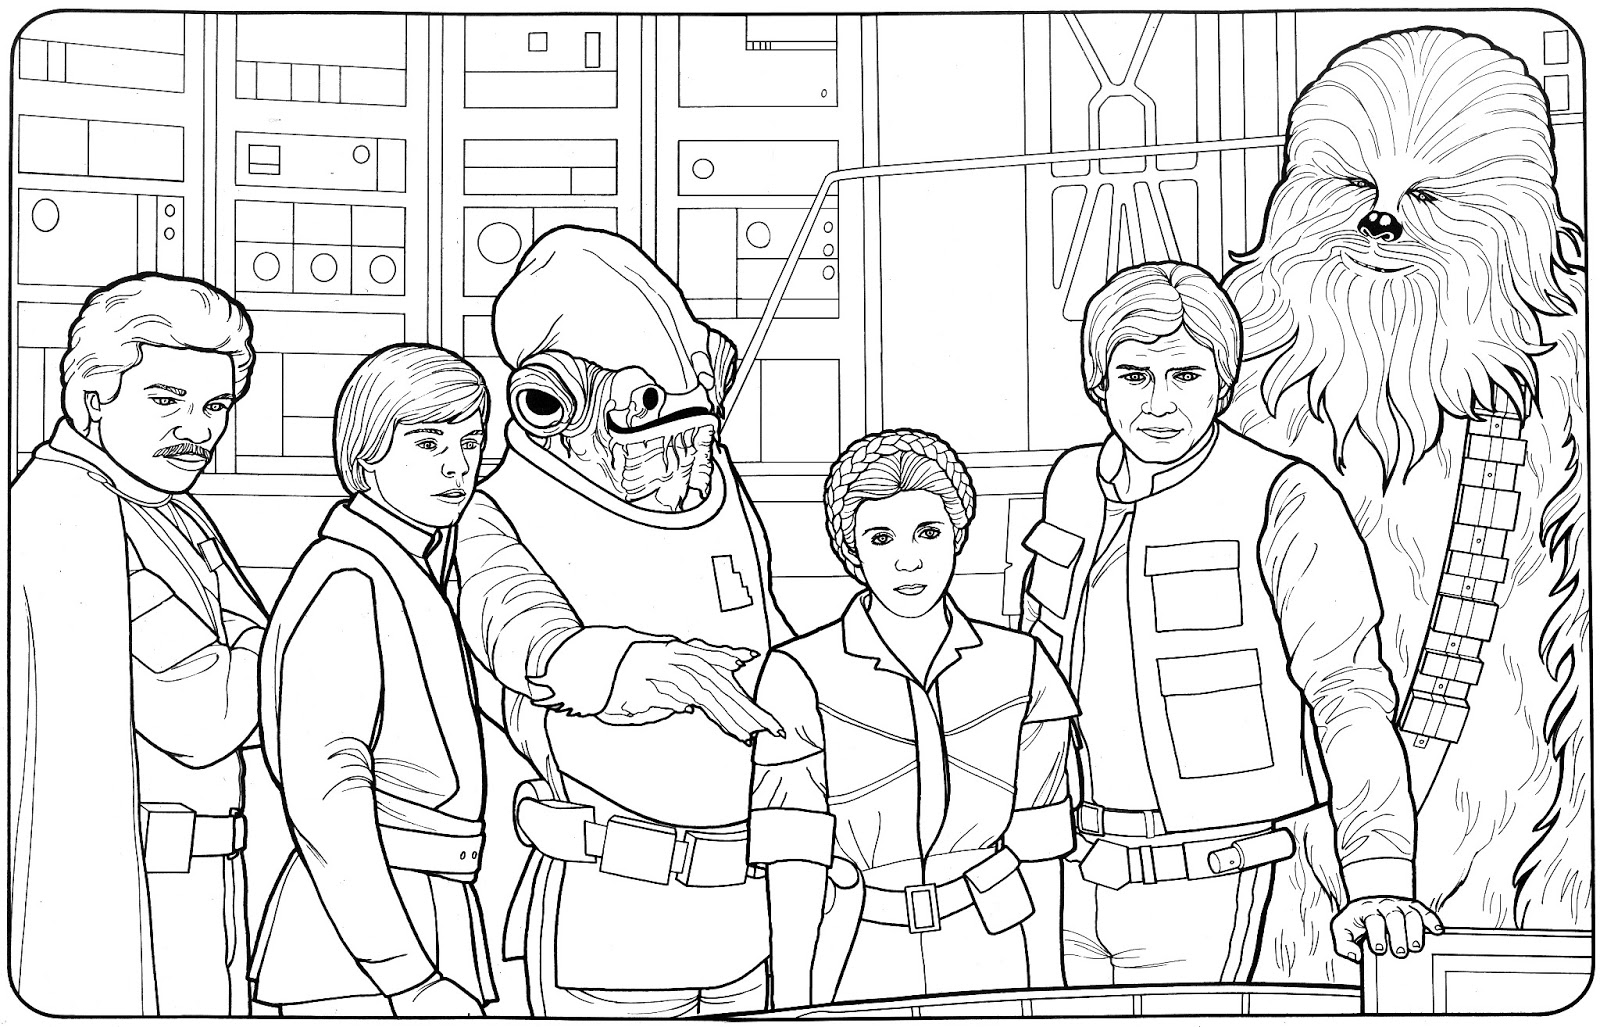 Make Your Own Star Wars Adventure With 50 Vintage 1980's Coloring Pages -  Kitchen Overlord